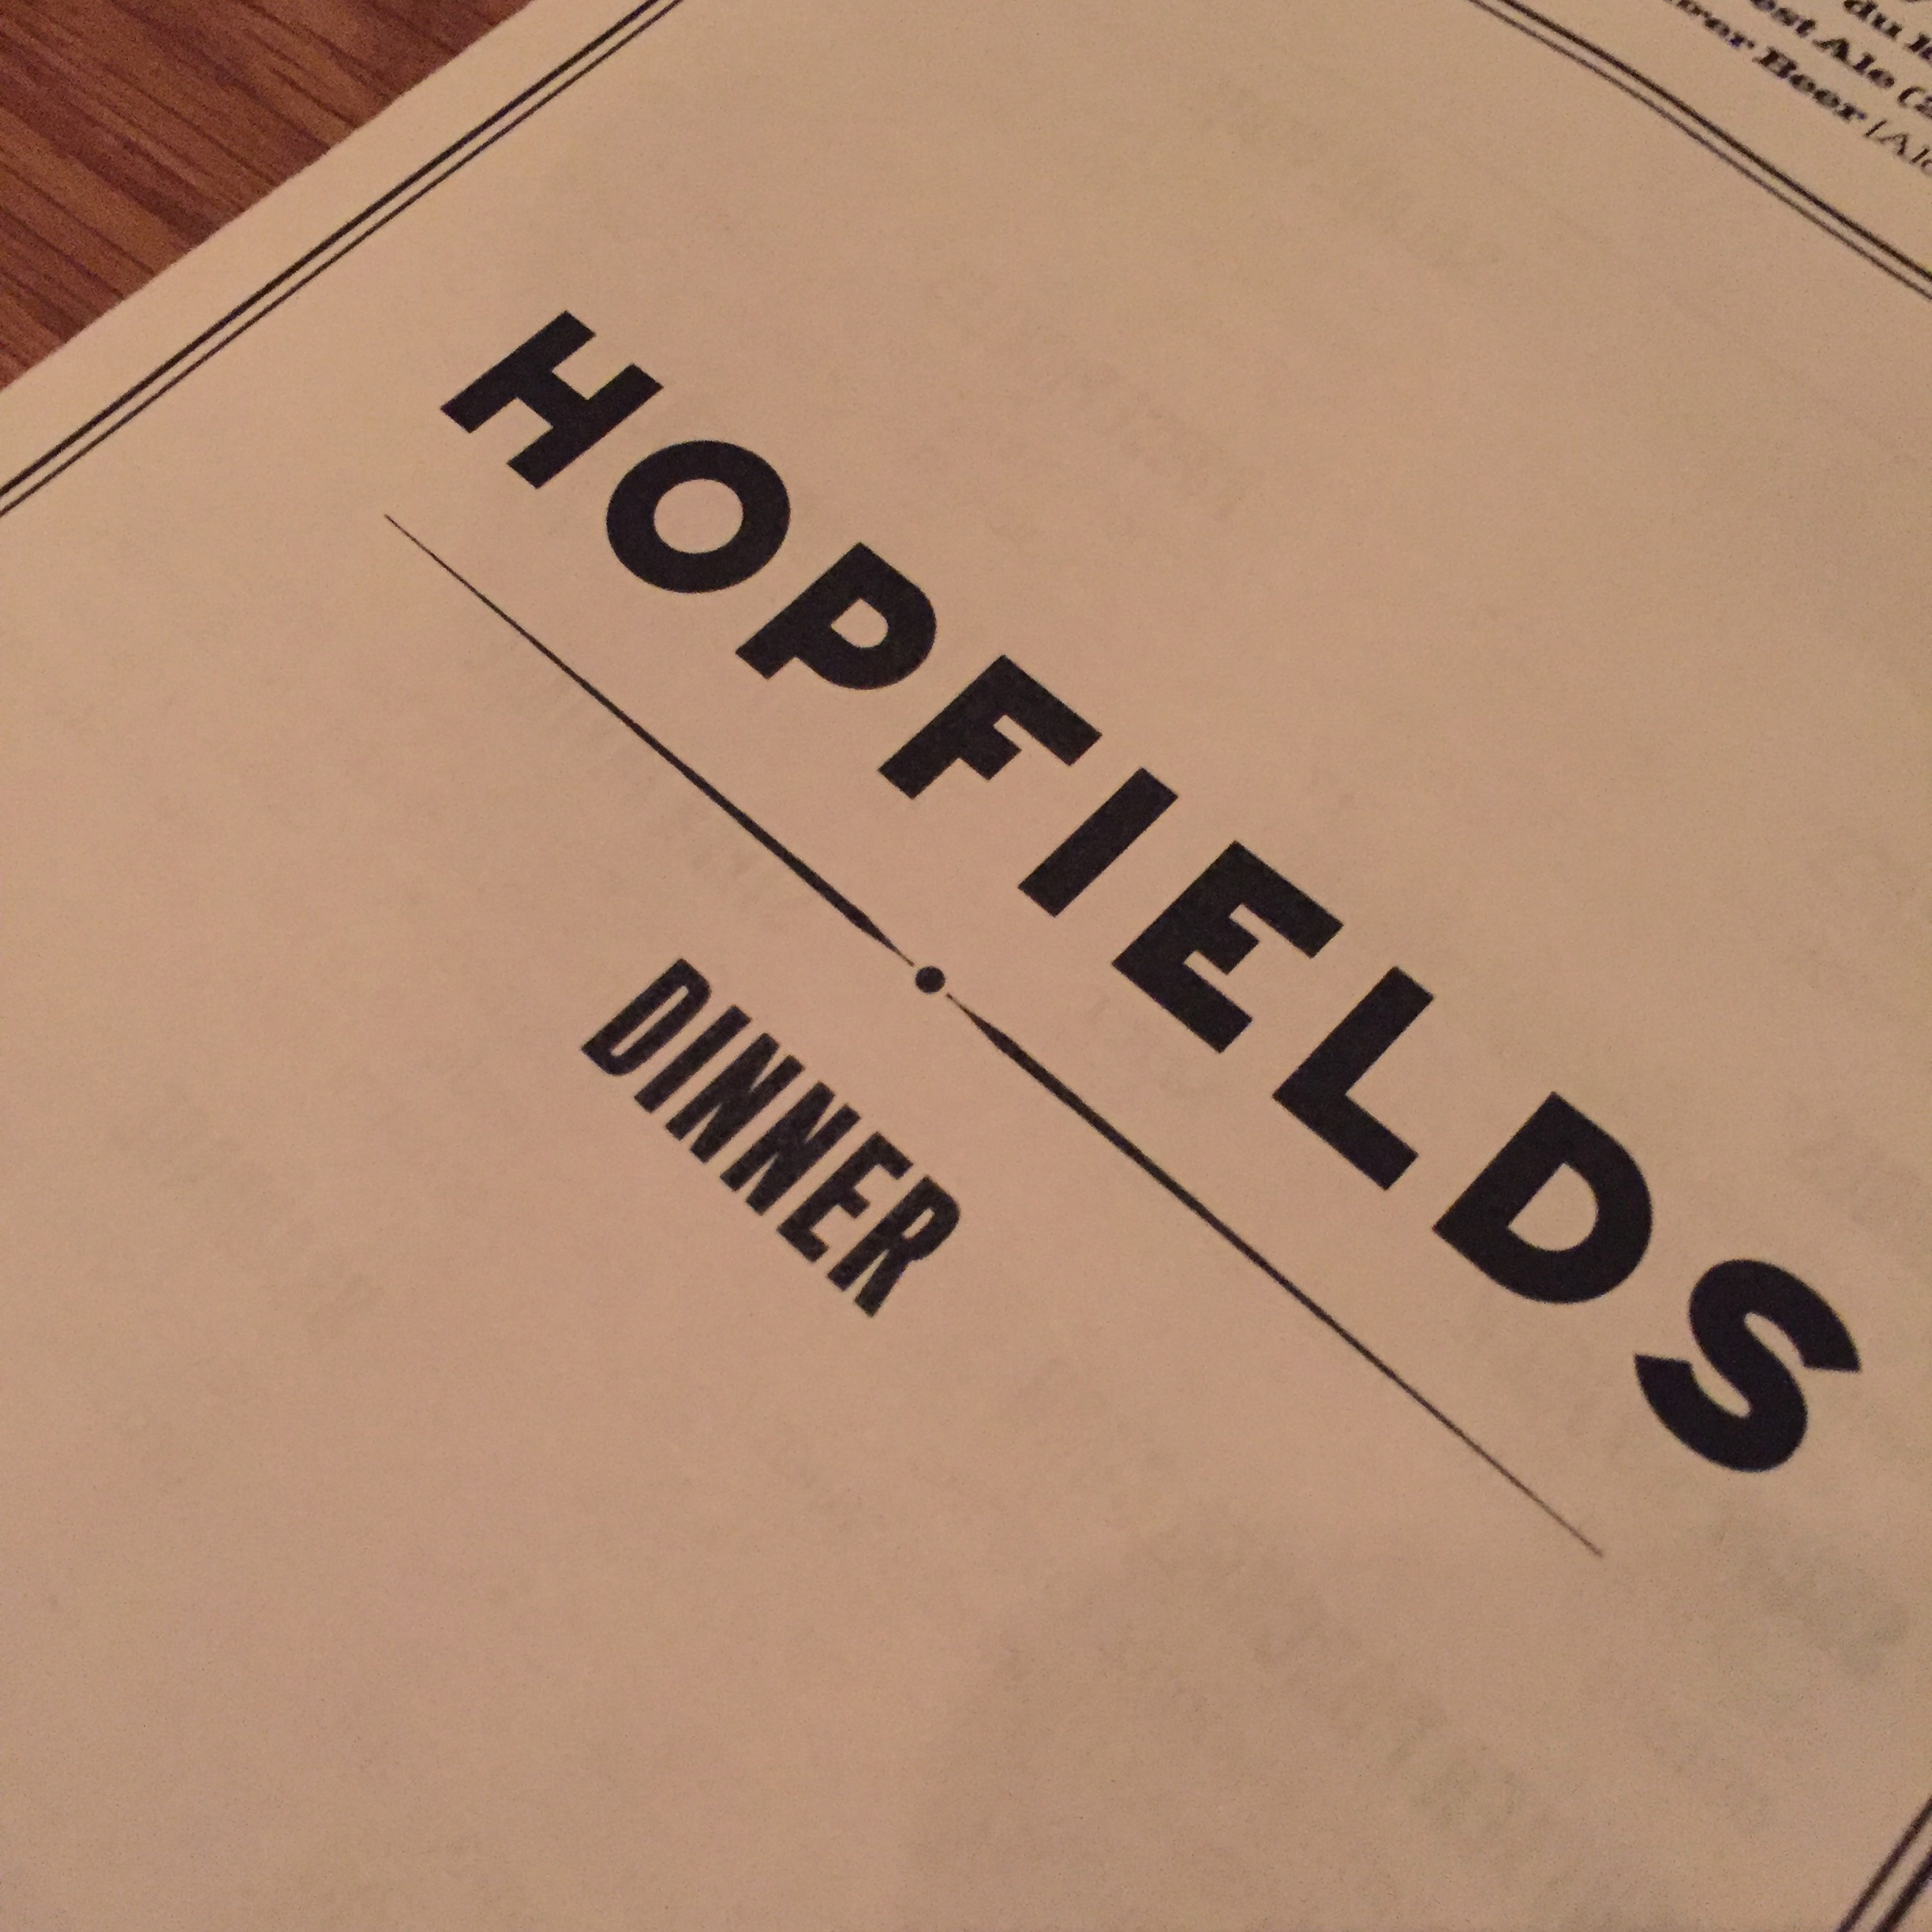 Hopfields photo